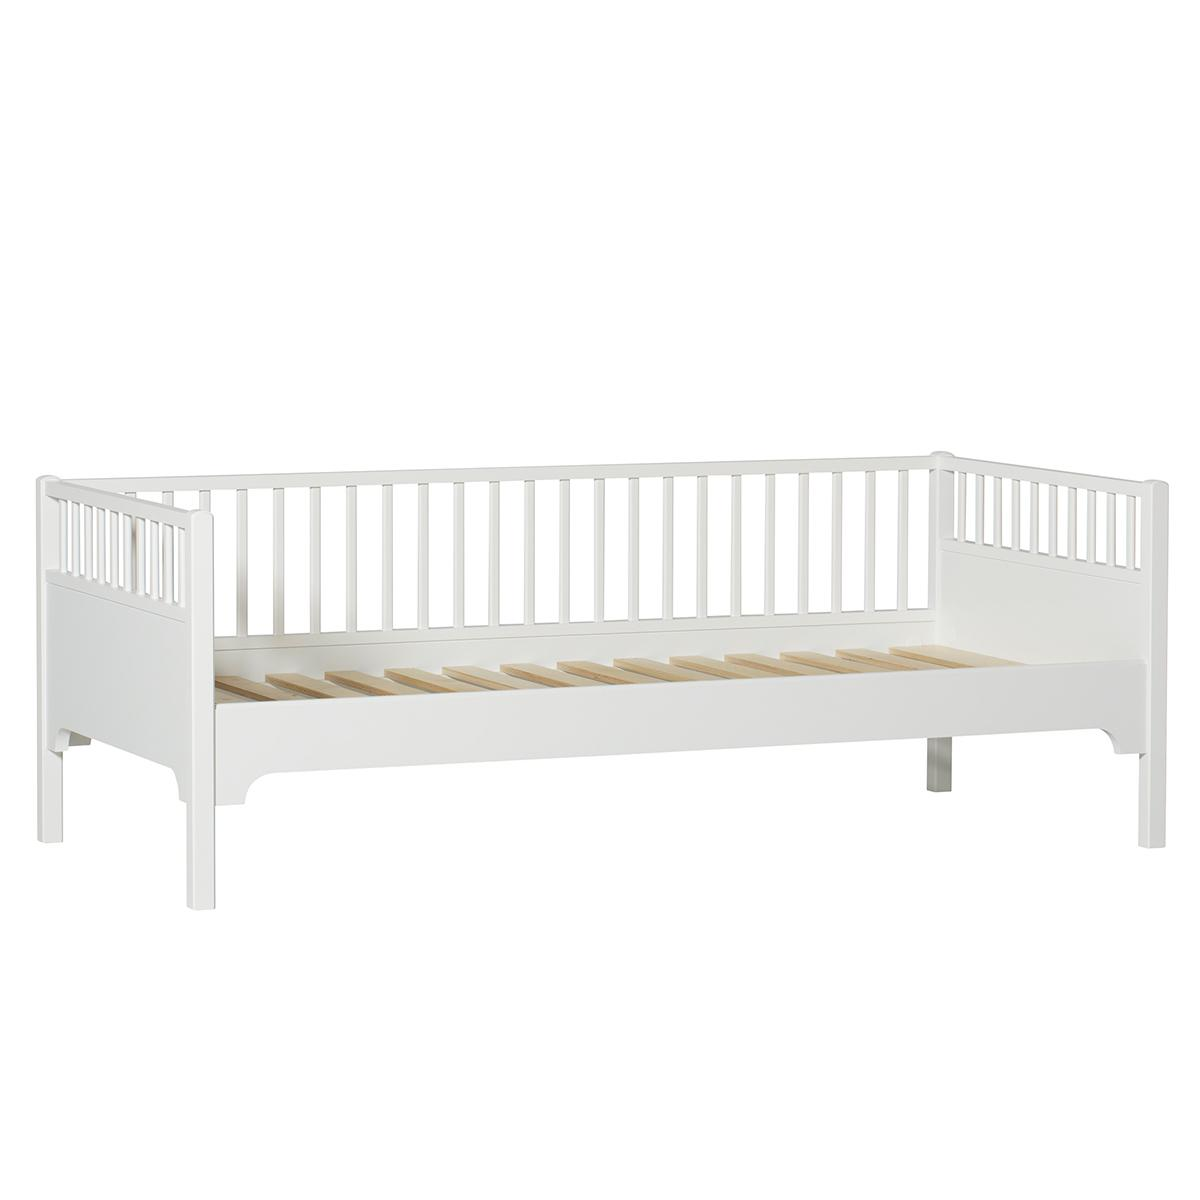 Cama-sofá 90x200cm SEASIDE CLASSIC Oliver Furniture blanco